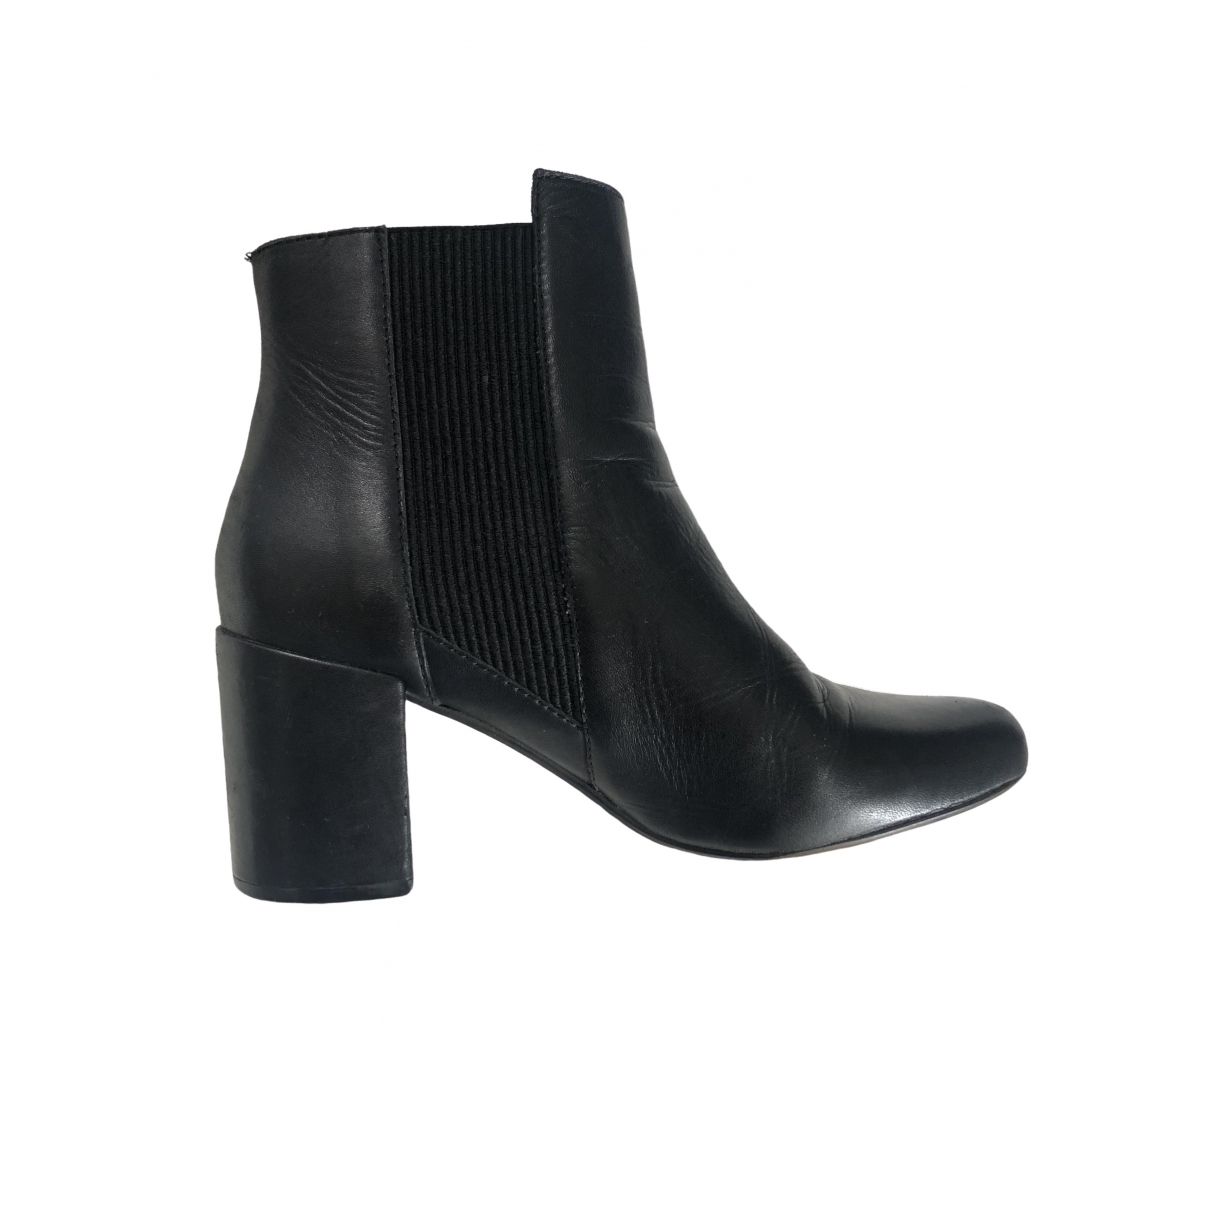 Zara \N Black Leather Ankle boots for Women 38 EU